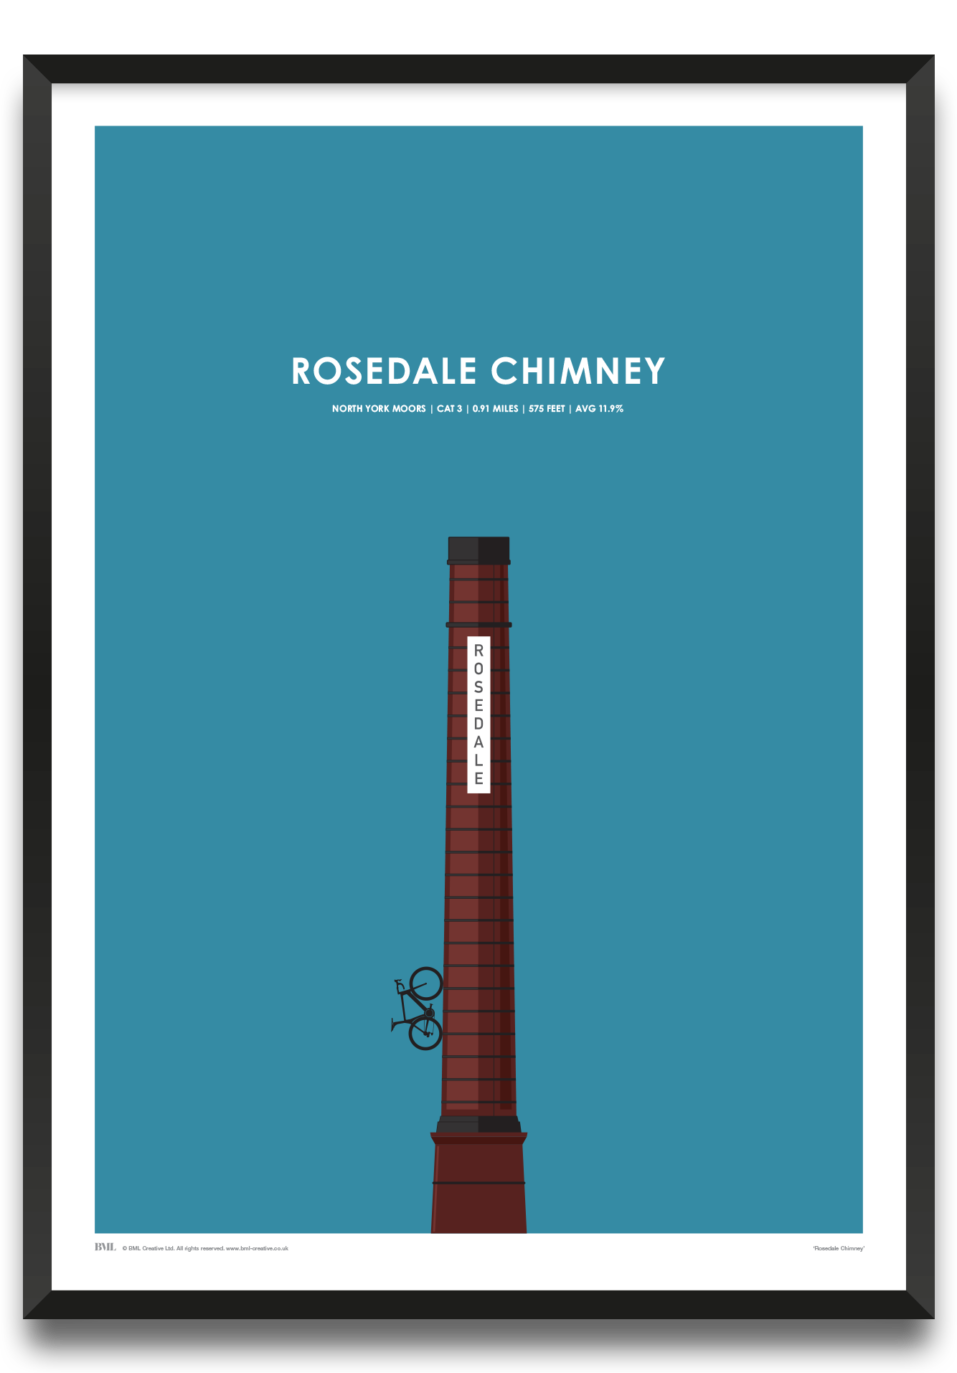 Rosedale Chimney, cycling screenprint by Dave Holloway, Prints for Charity